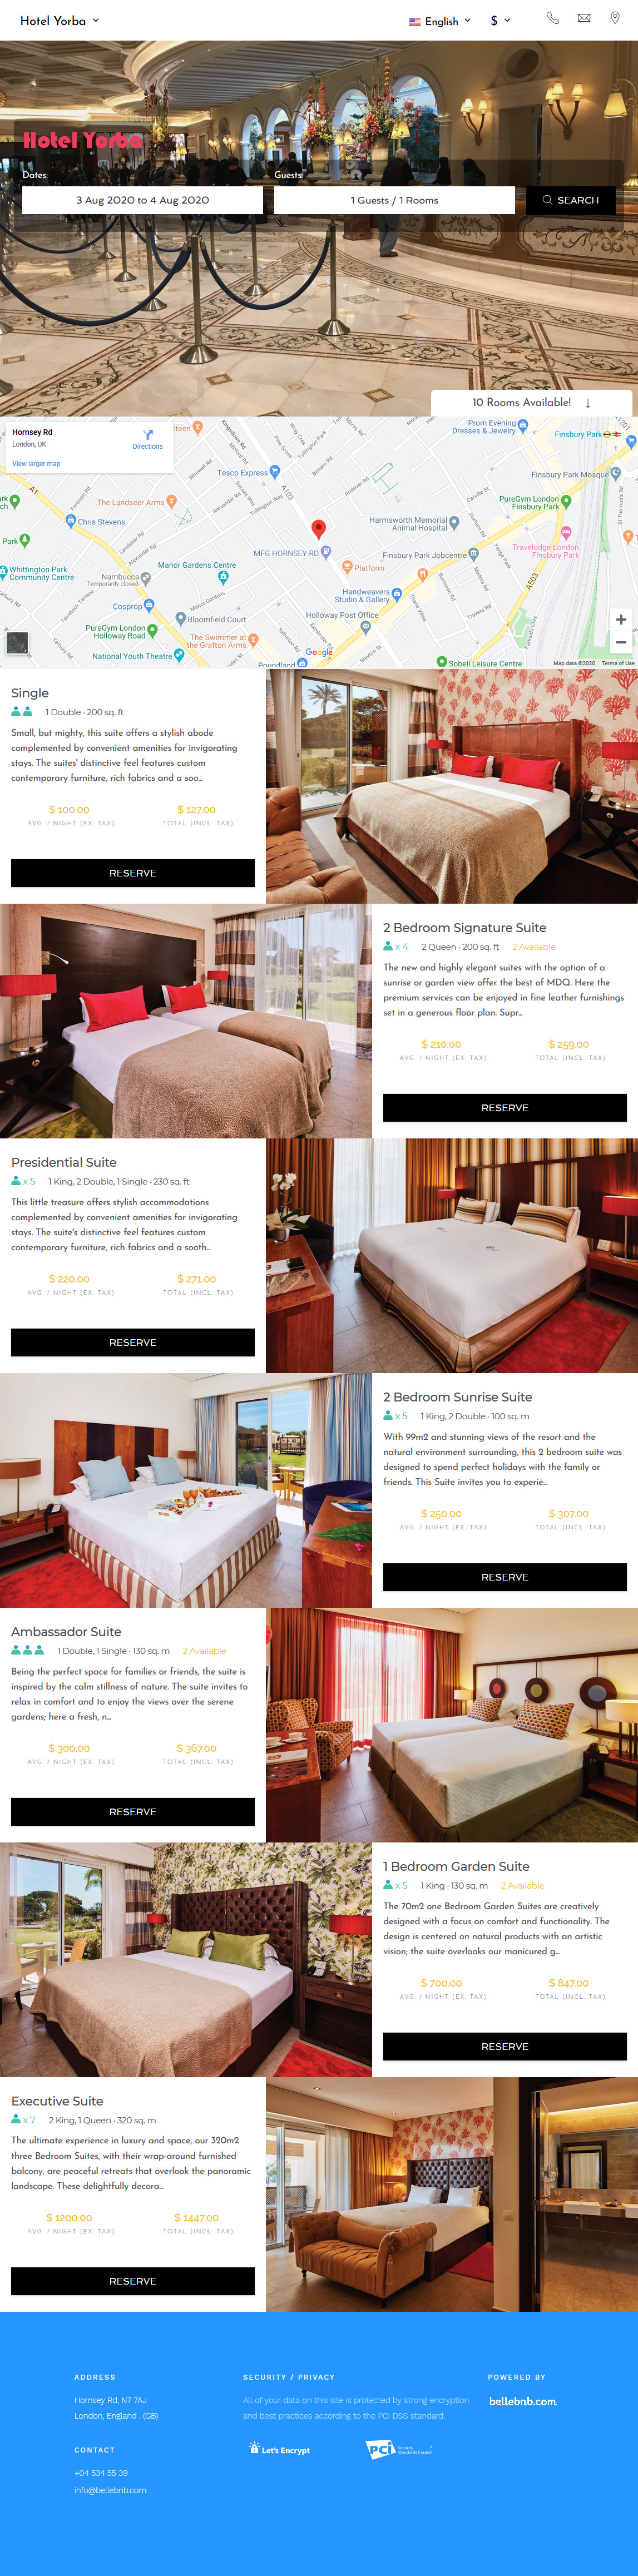 Hotel WebSite design and hosting with White Label Direct Booking Engine.